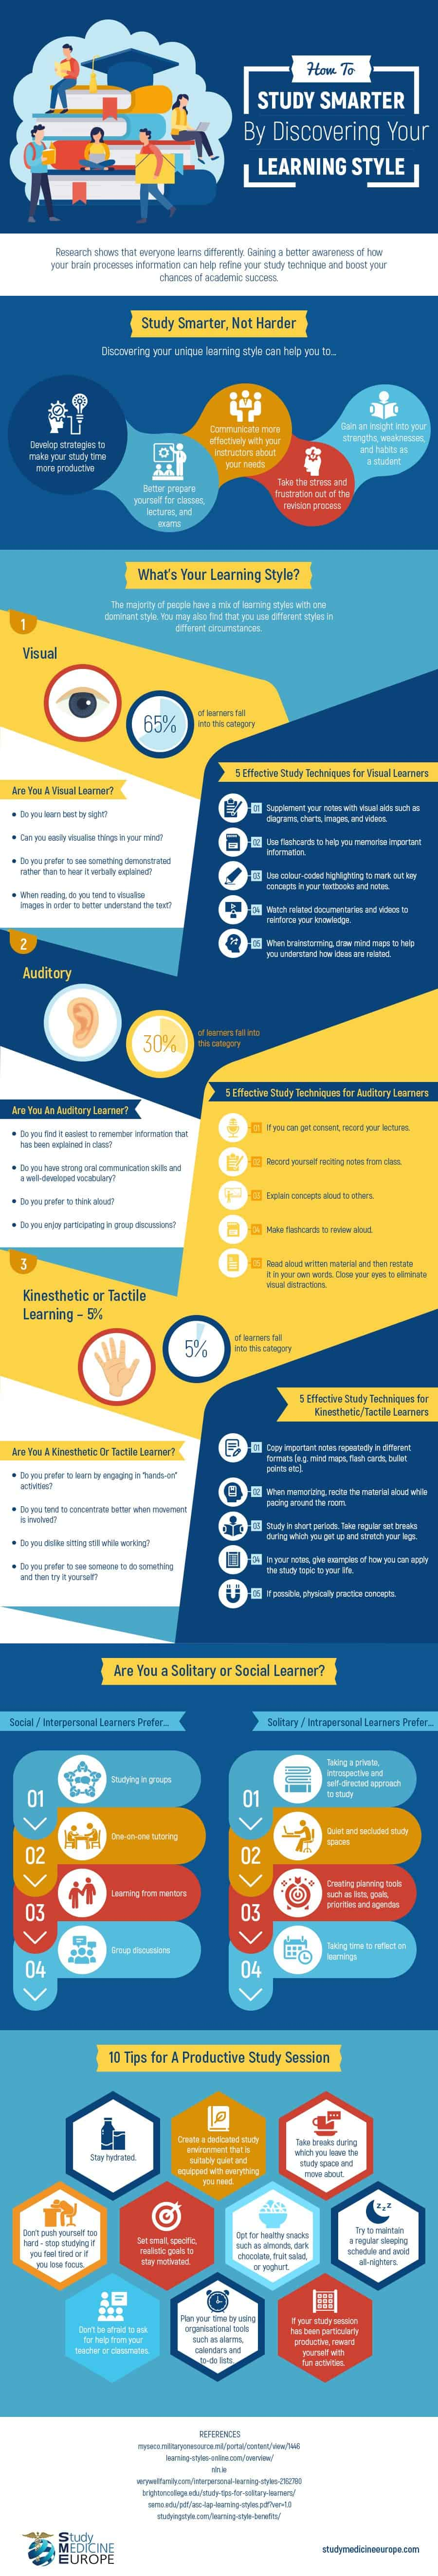 Infographic with information on learning styles